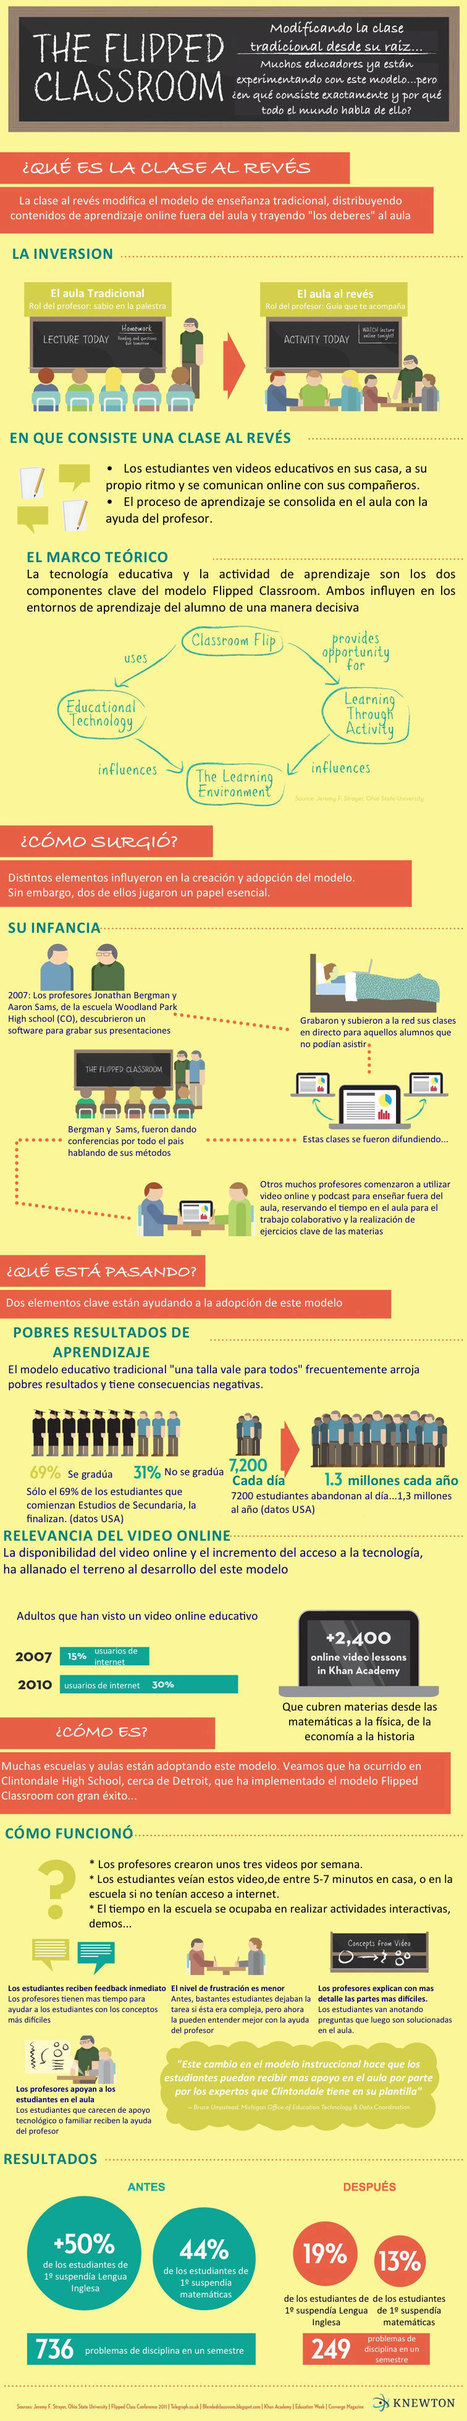 The Flipped Classroom - La clase al revés | educacion-y-ntic | Scoop.it